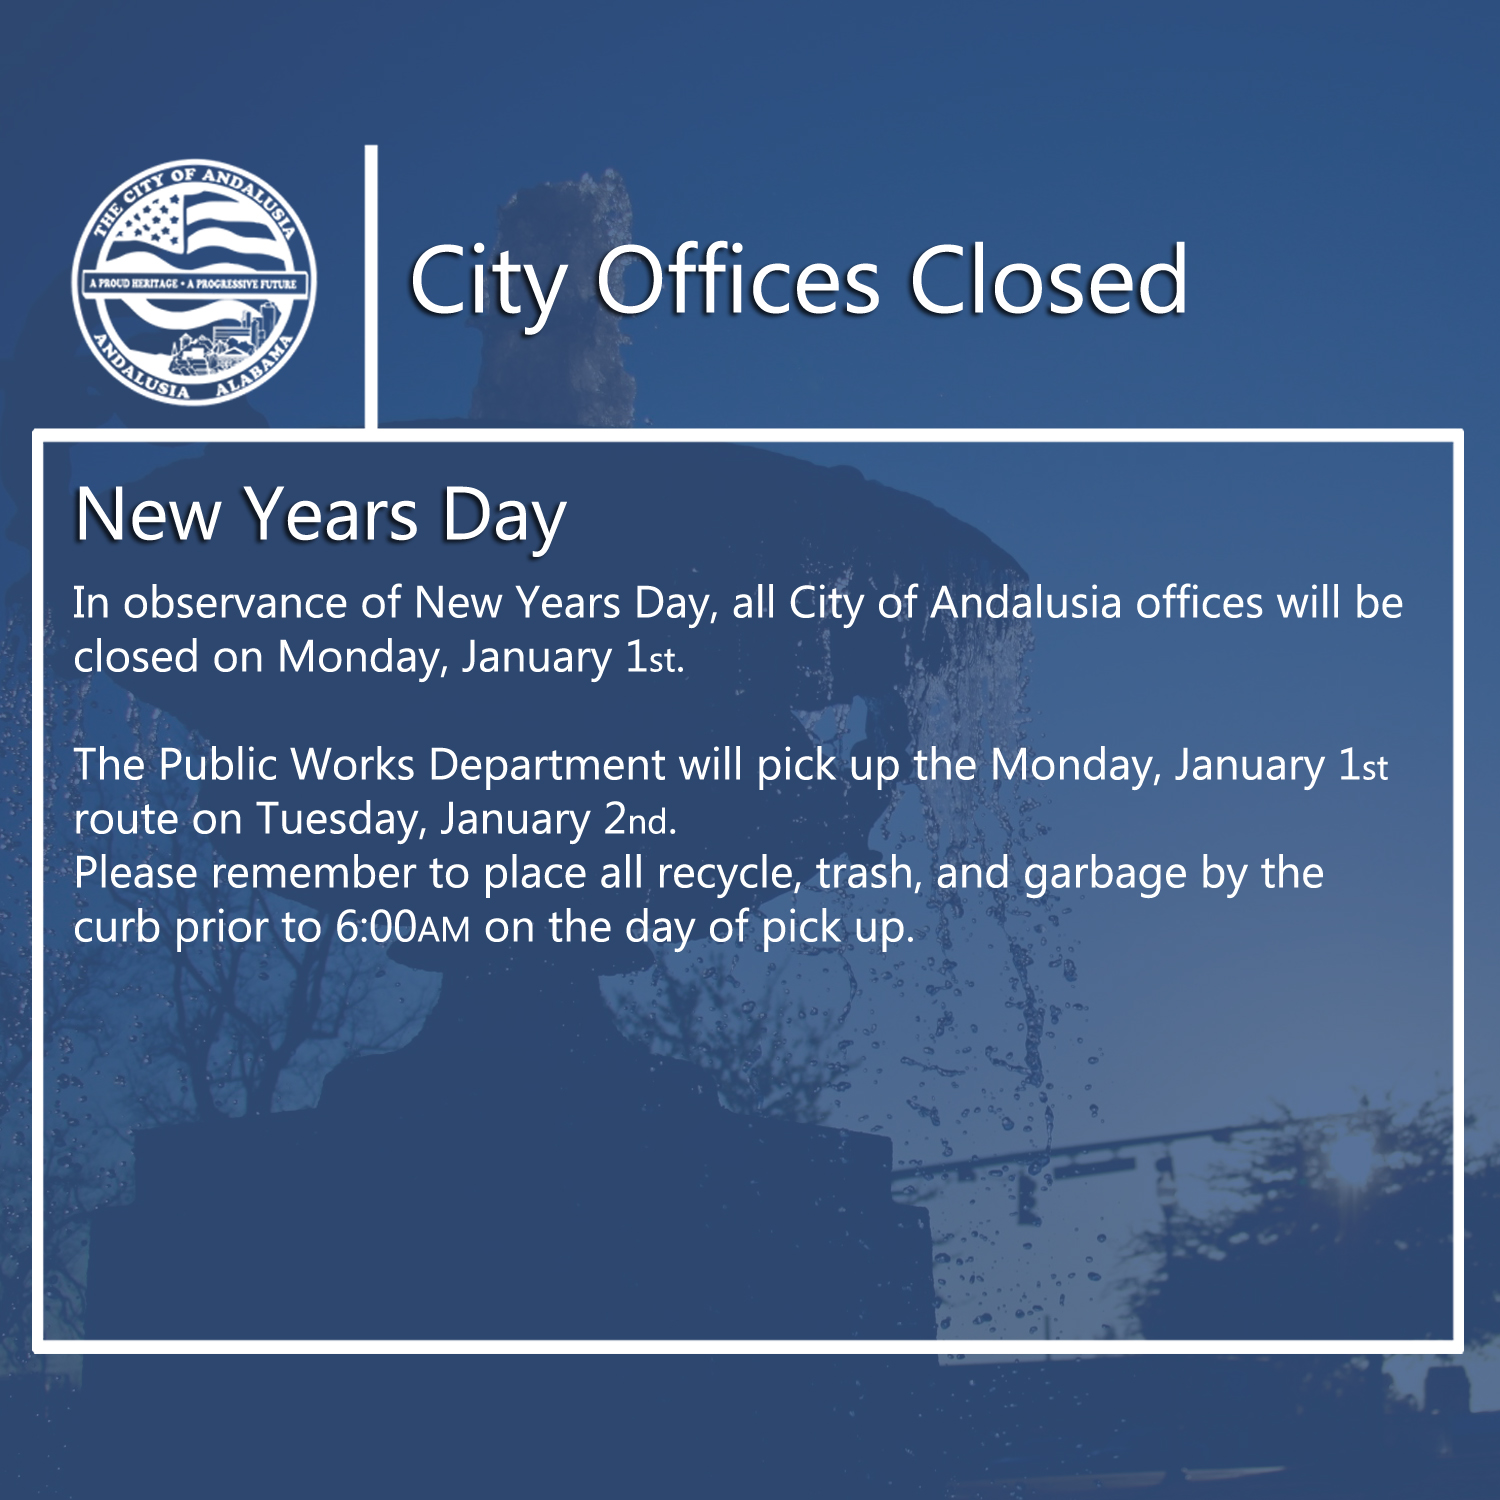 Facebook - City Offices Closed-News Years Day.jpg